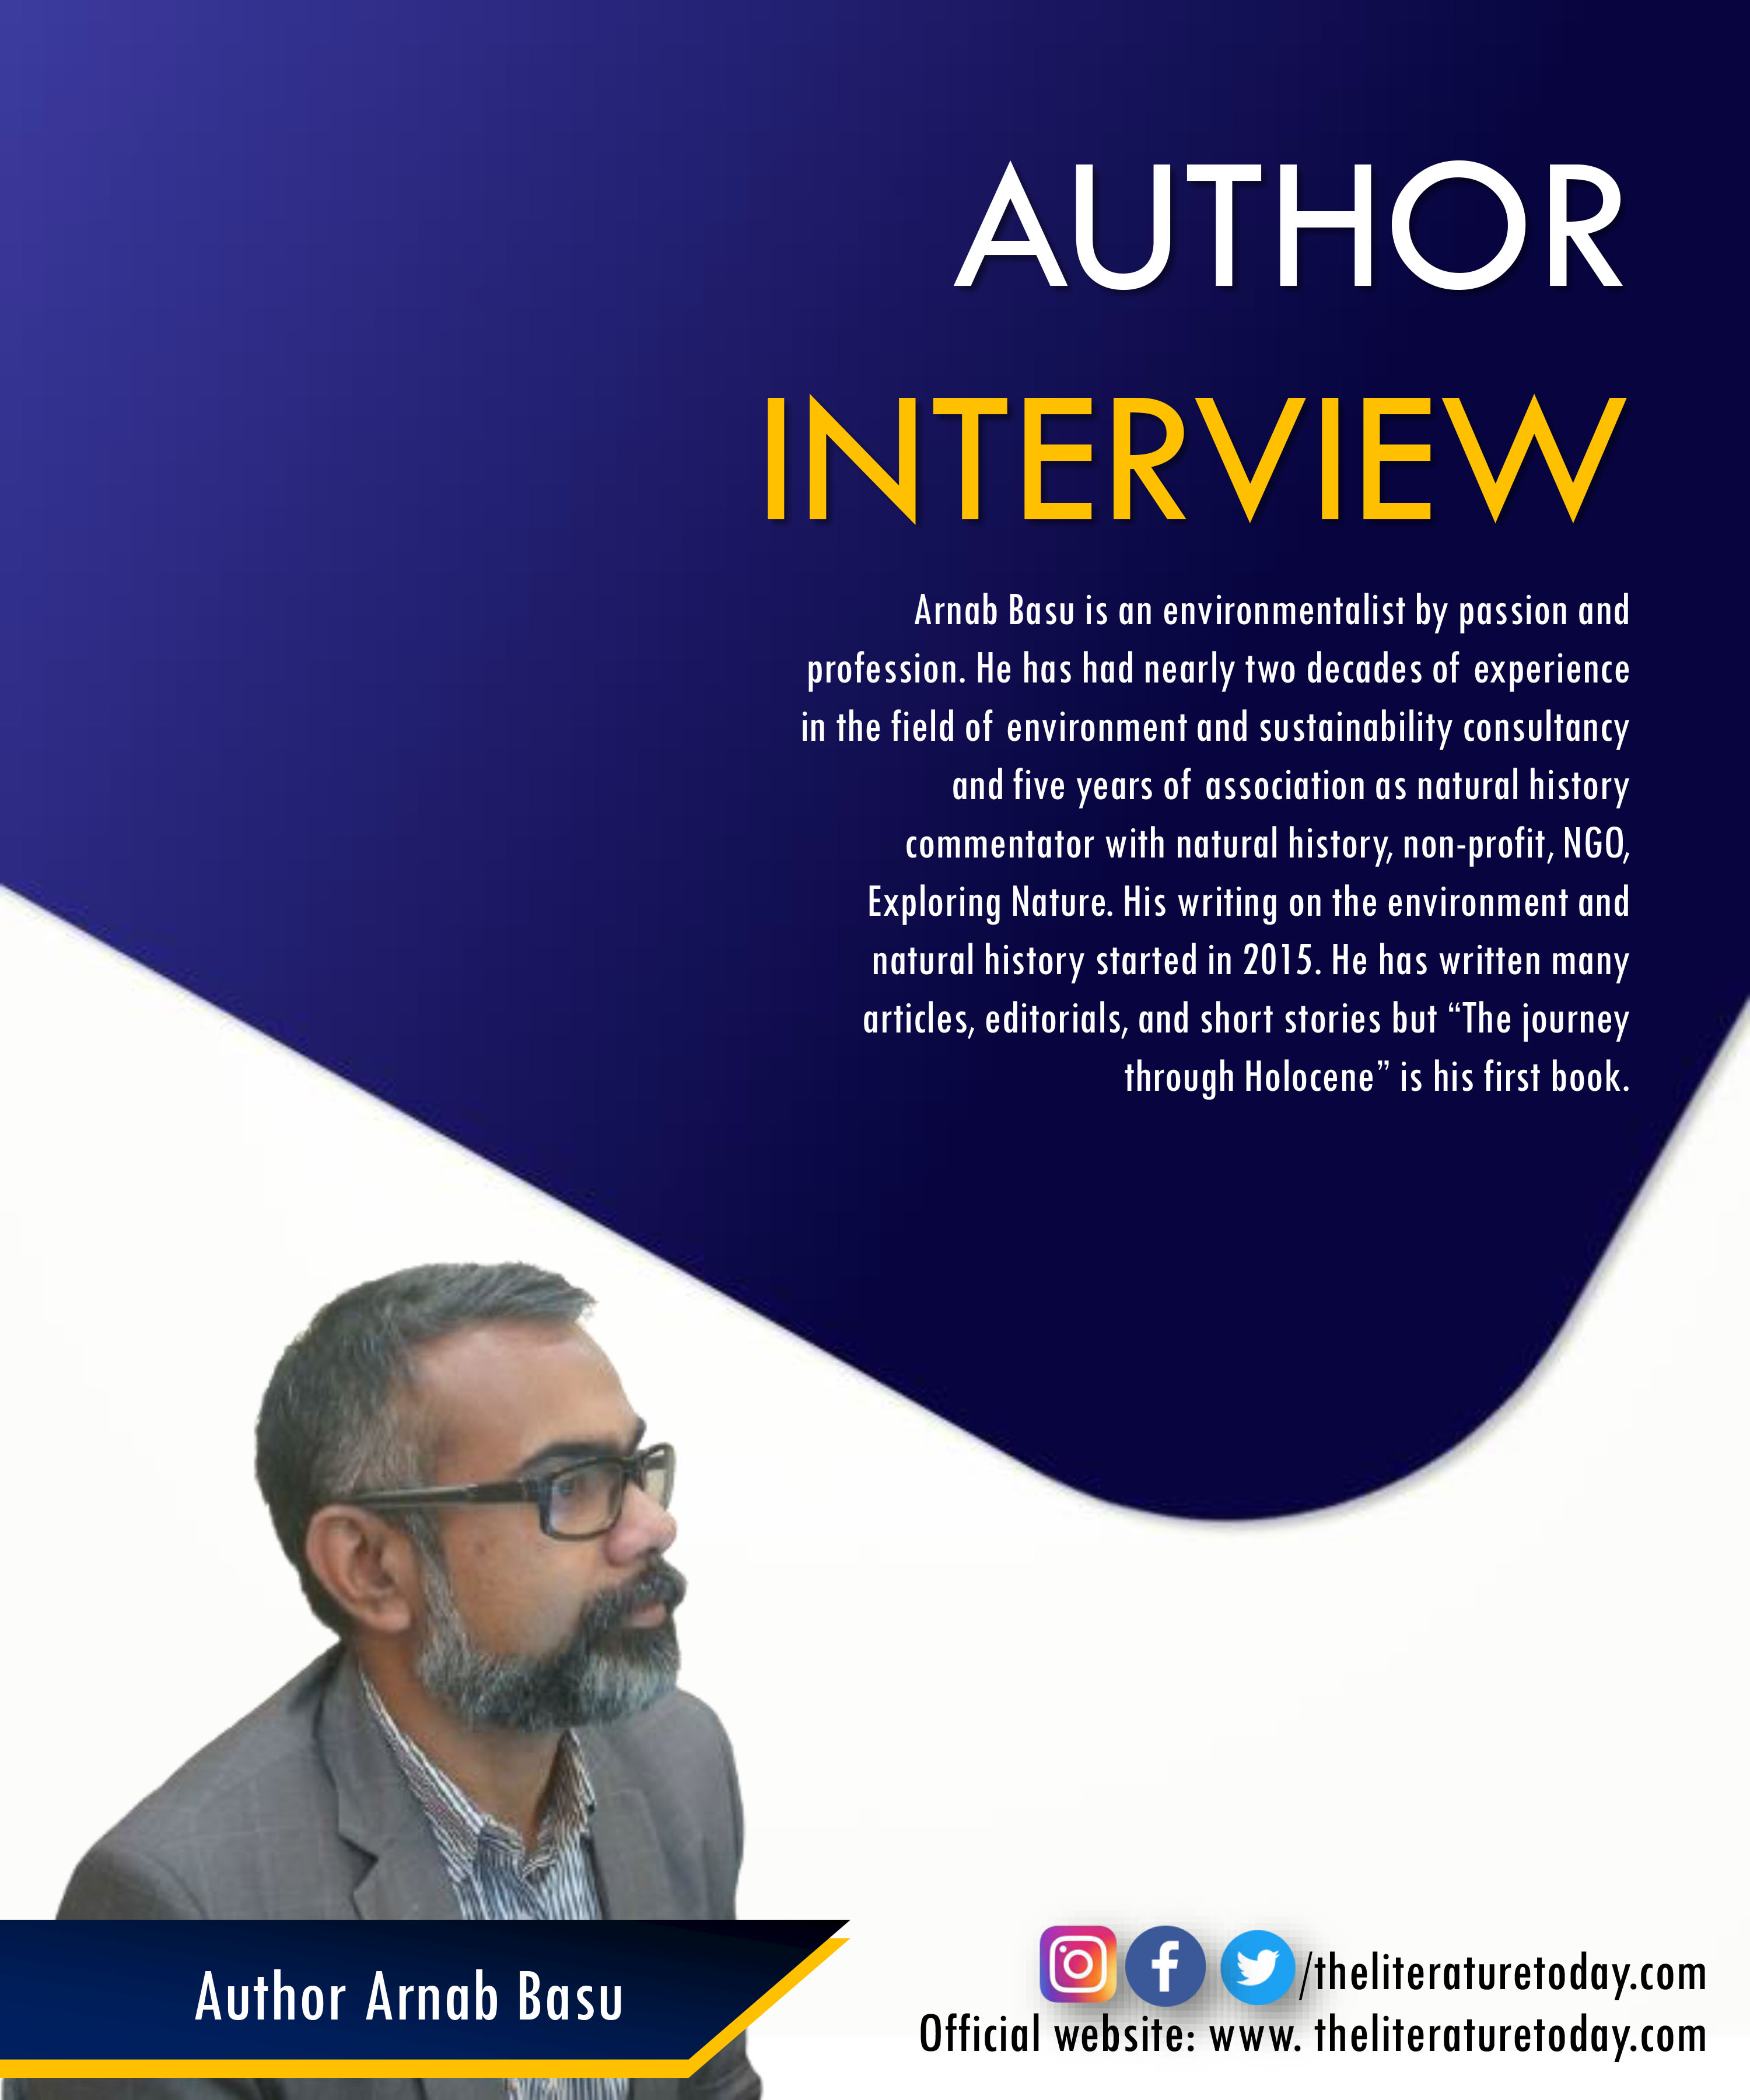 An Interview with Author Arnab Basu at The Literature Today